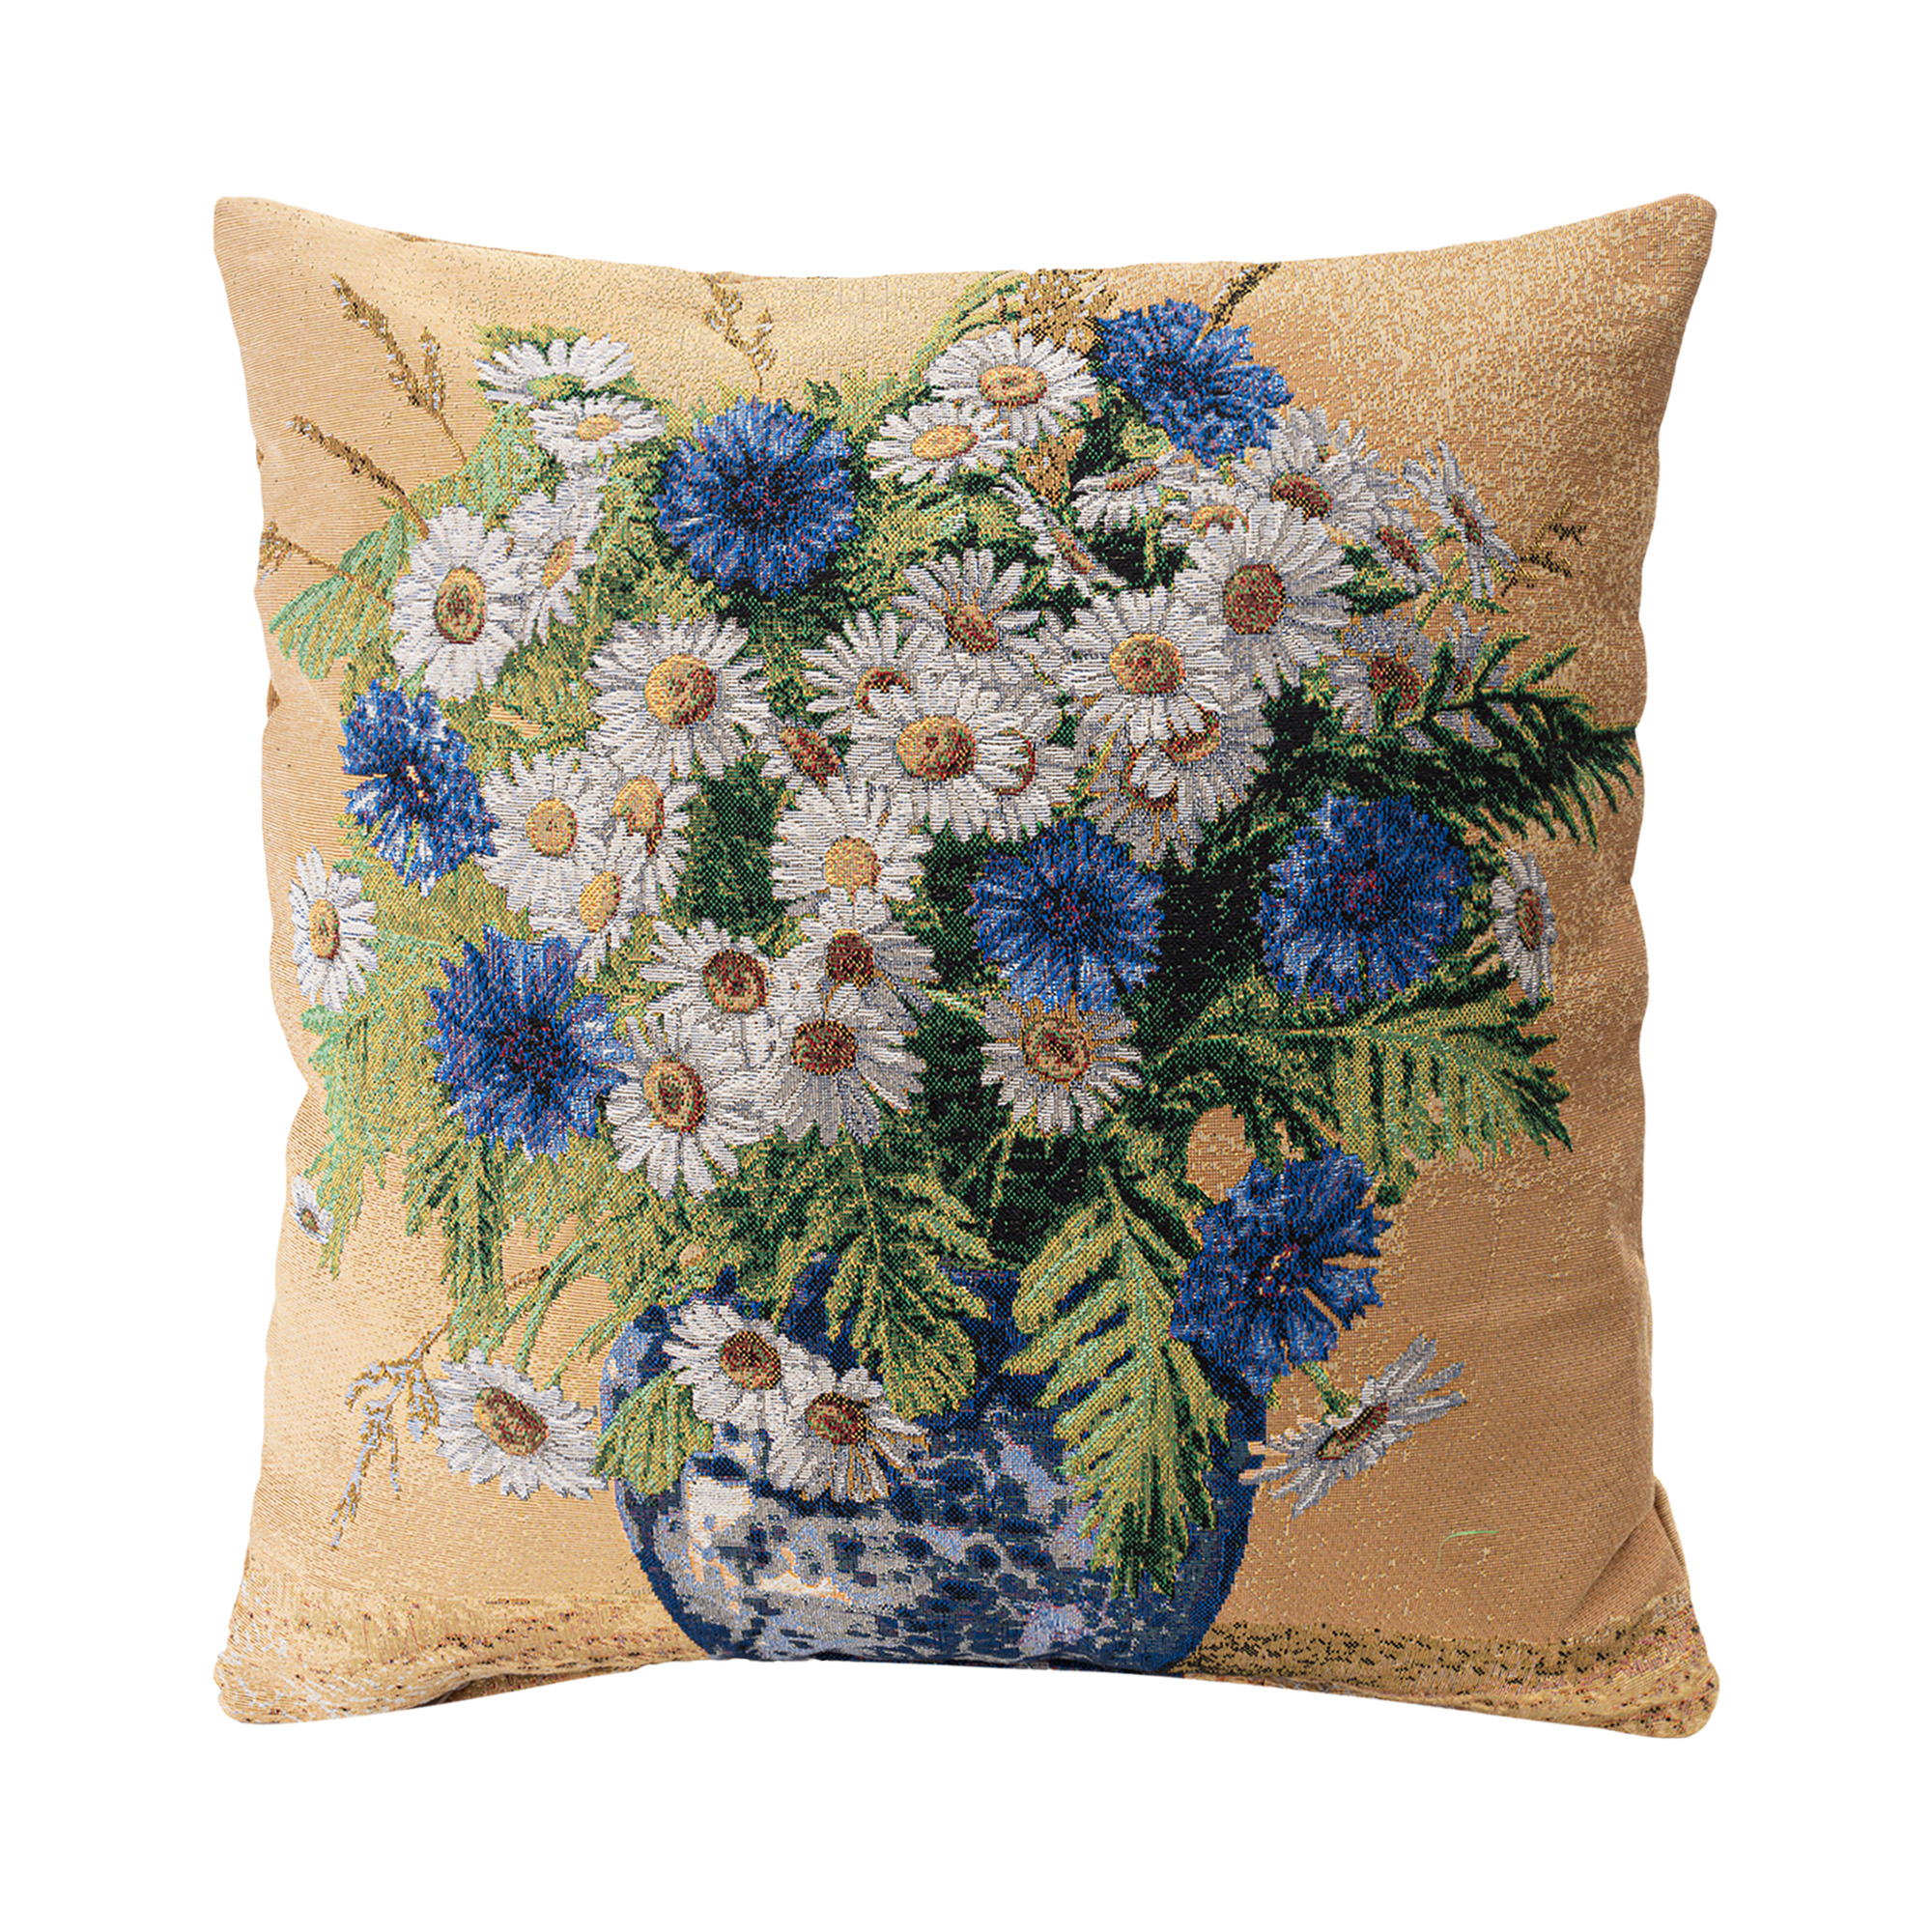 """Daisy Jacquard Woven Cushion Cover/Throw Pillow. Double-Sided Easy Care Polycotton. 45x45cm/18x18""""(Multicolor)"""